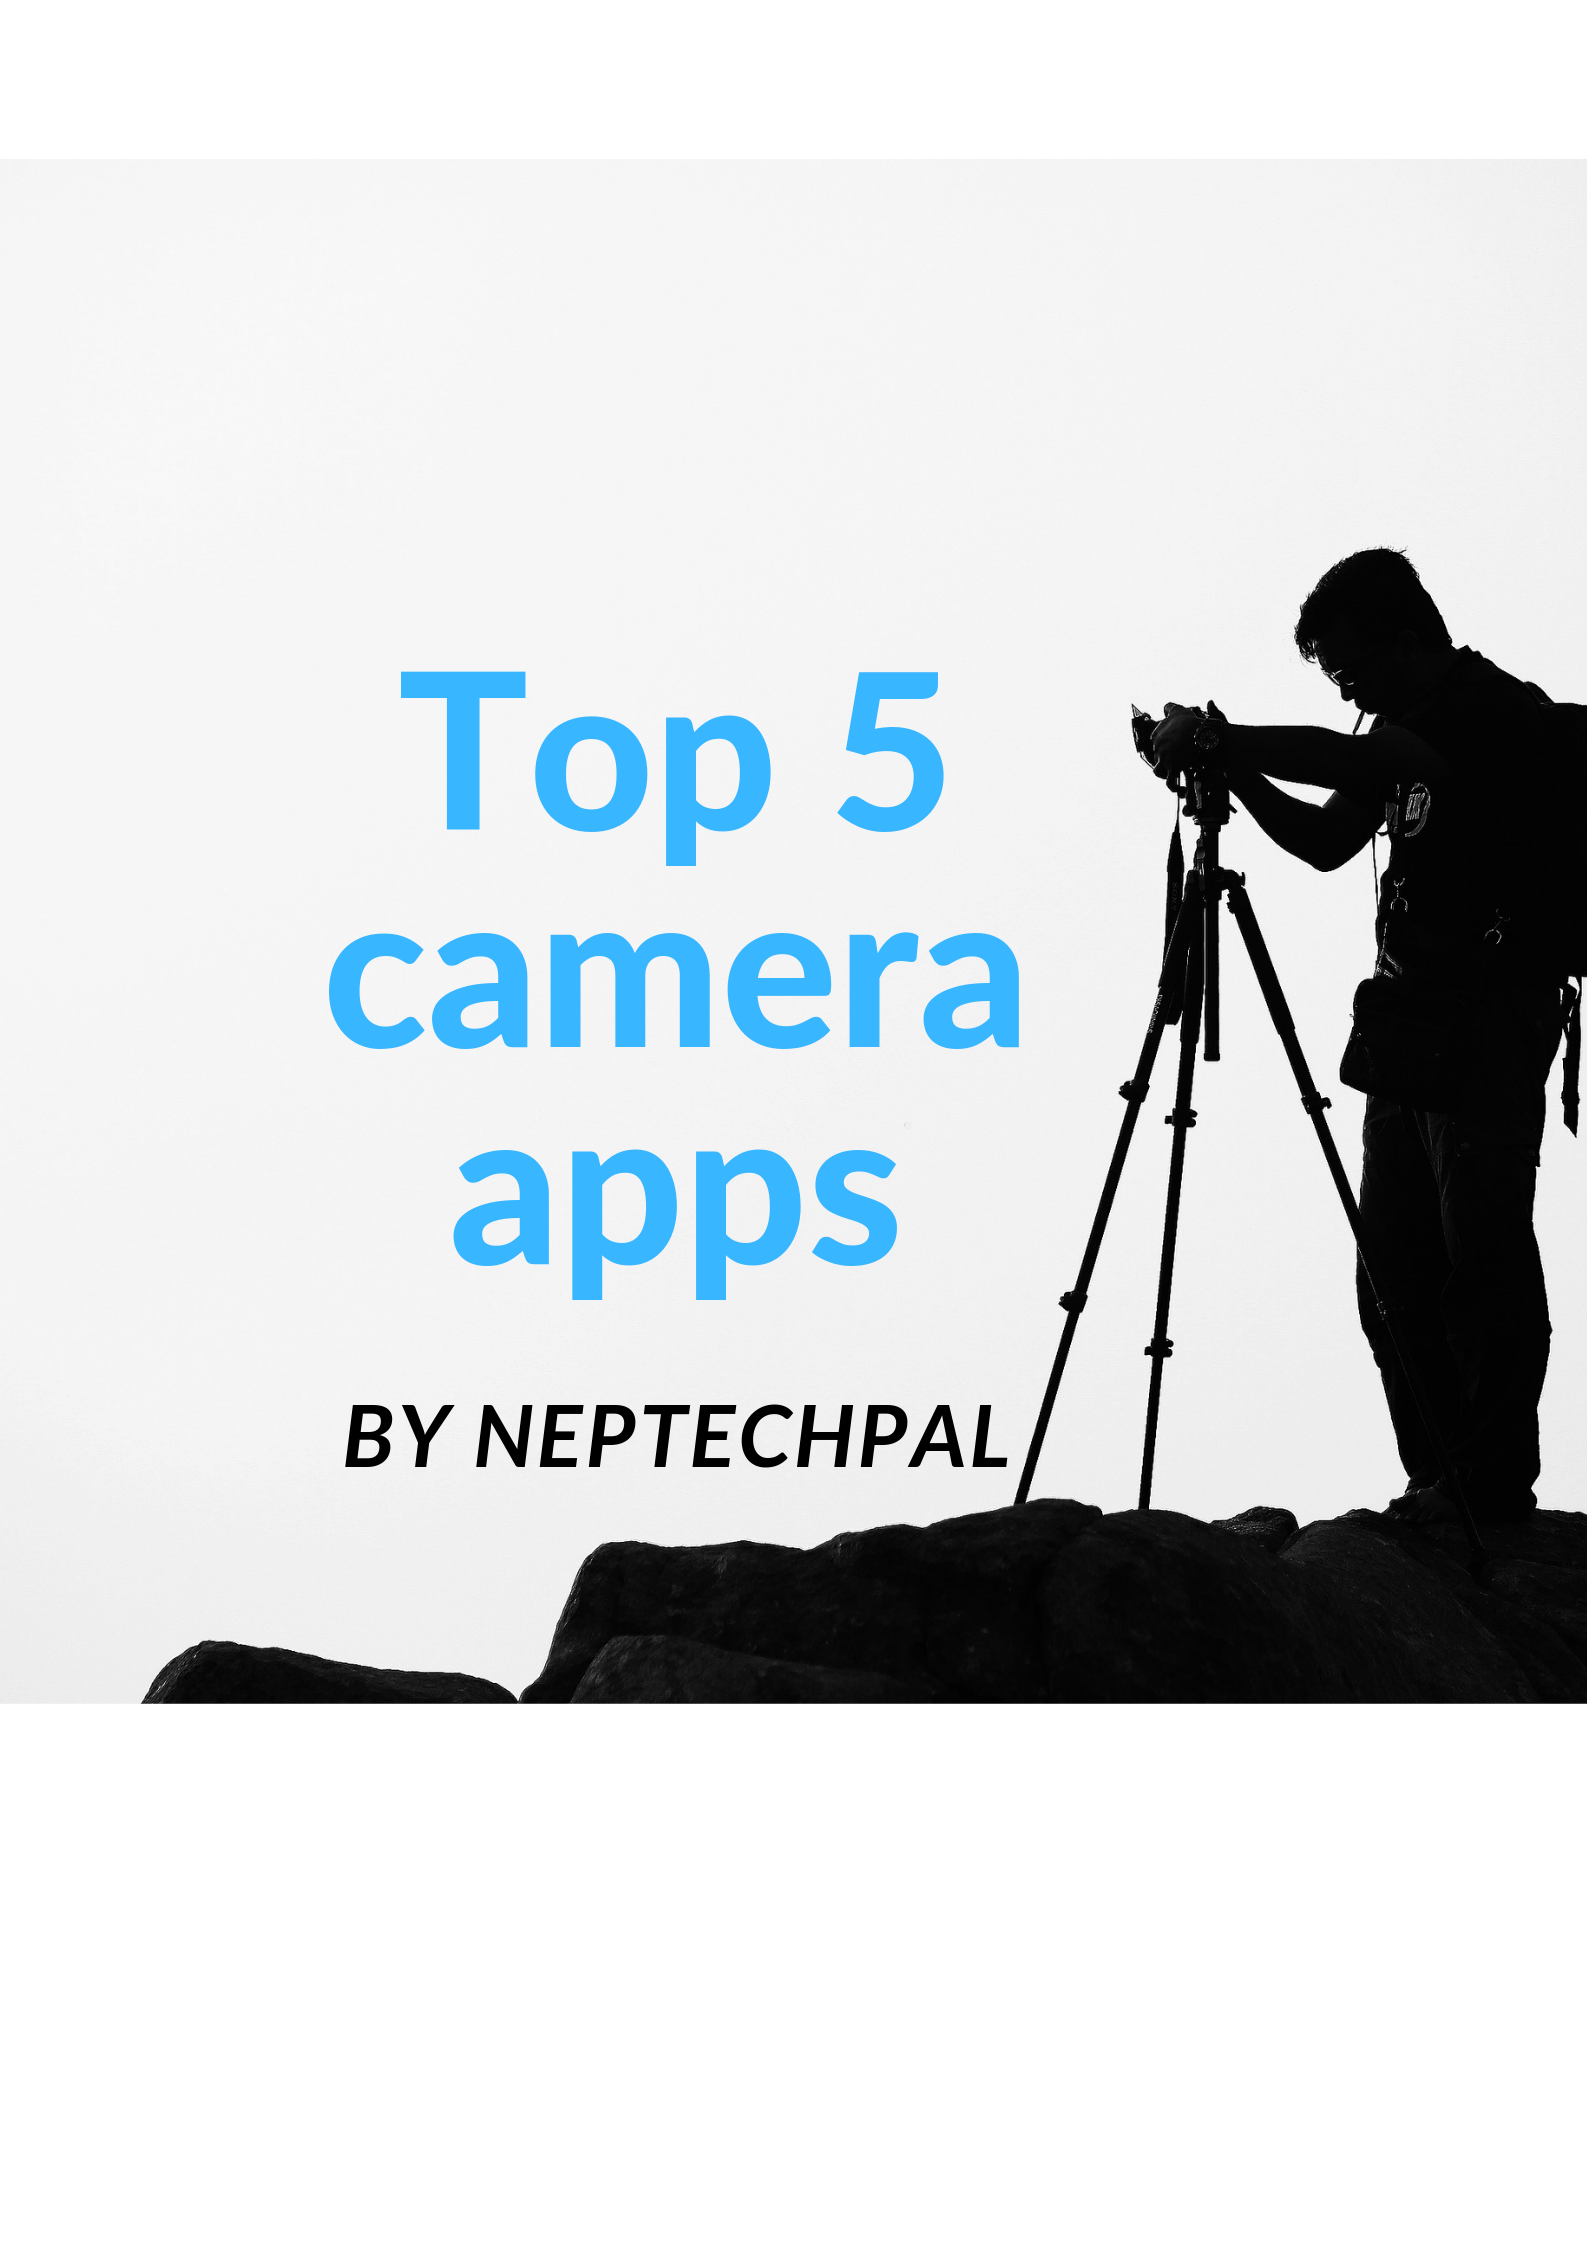 Top 5 camera apps for Smartphones: